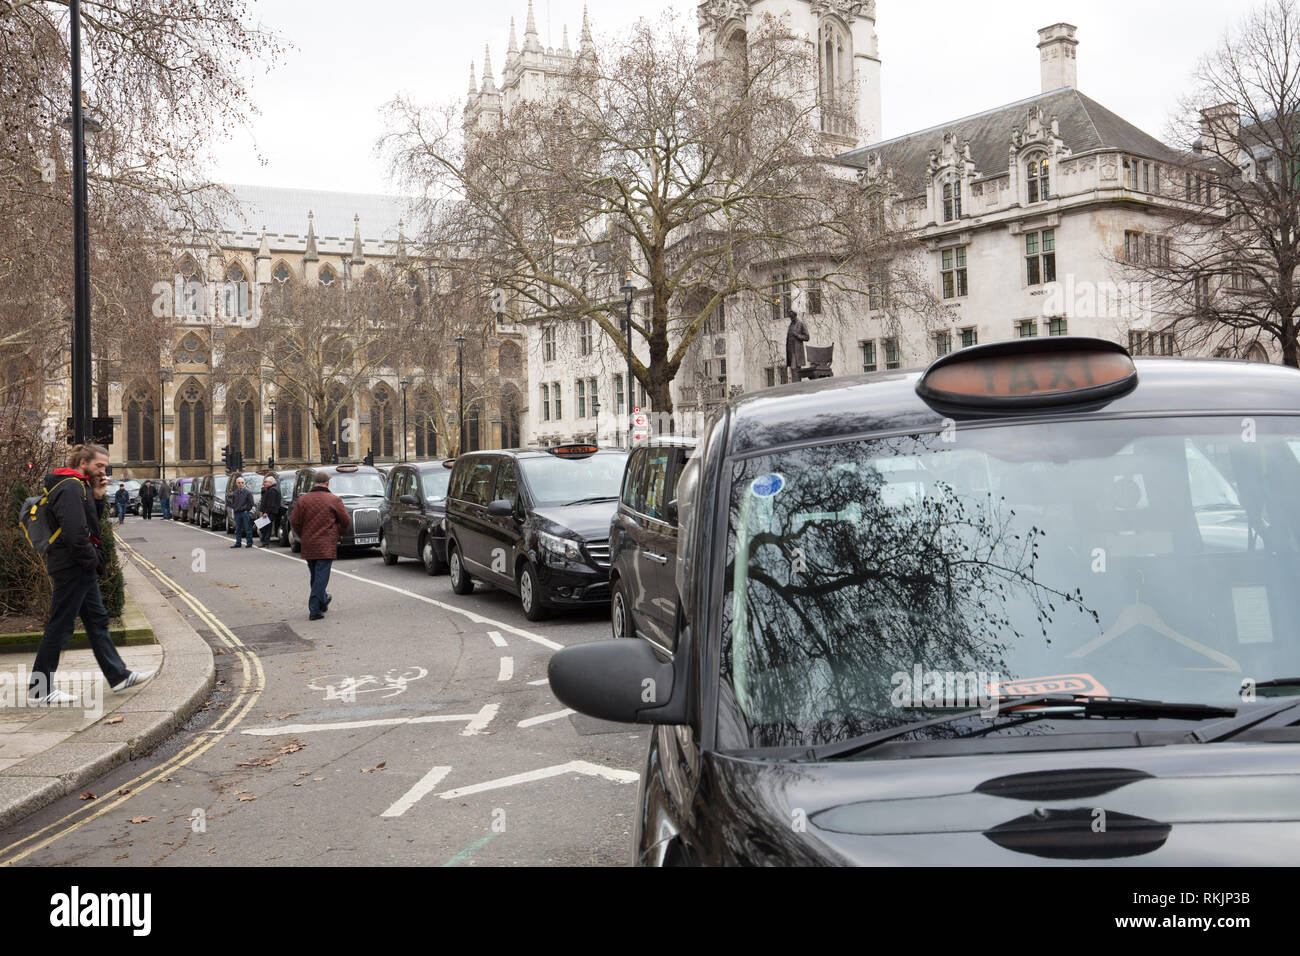 London, UK. 11th February 2019. Taxis standing in protest around Trafalagar Square near Westminster Abbey, today,  because London licensed taxi drivers bring traffic to standstill around Parliament Square, Westminster, London, protesting against policies of the Transport for London (TfL) and Mayor Khan. Credit: Joe Kuis / Alamy Live News - Stock Image